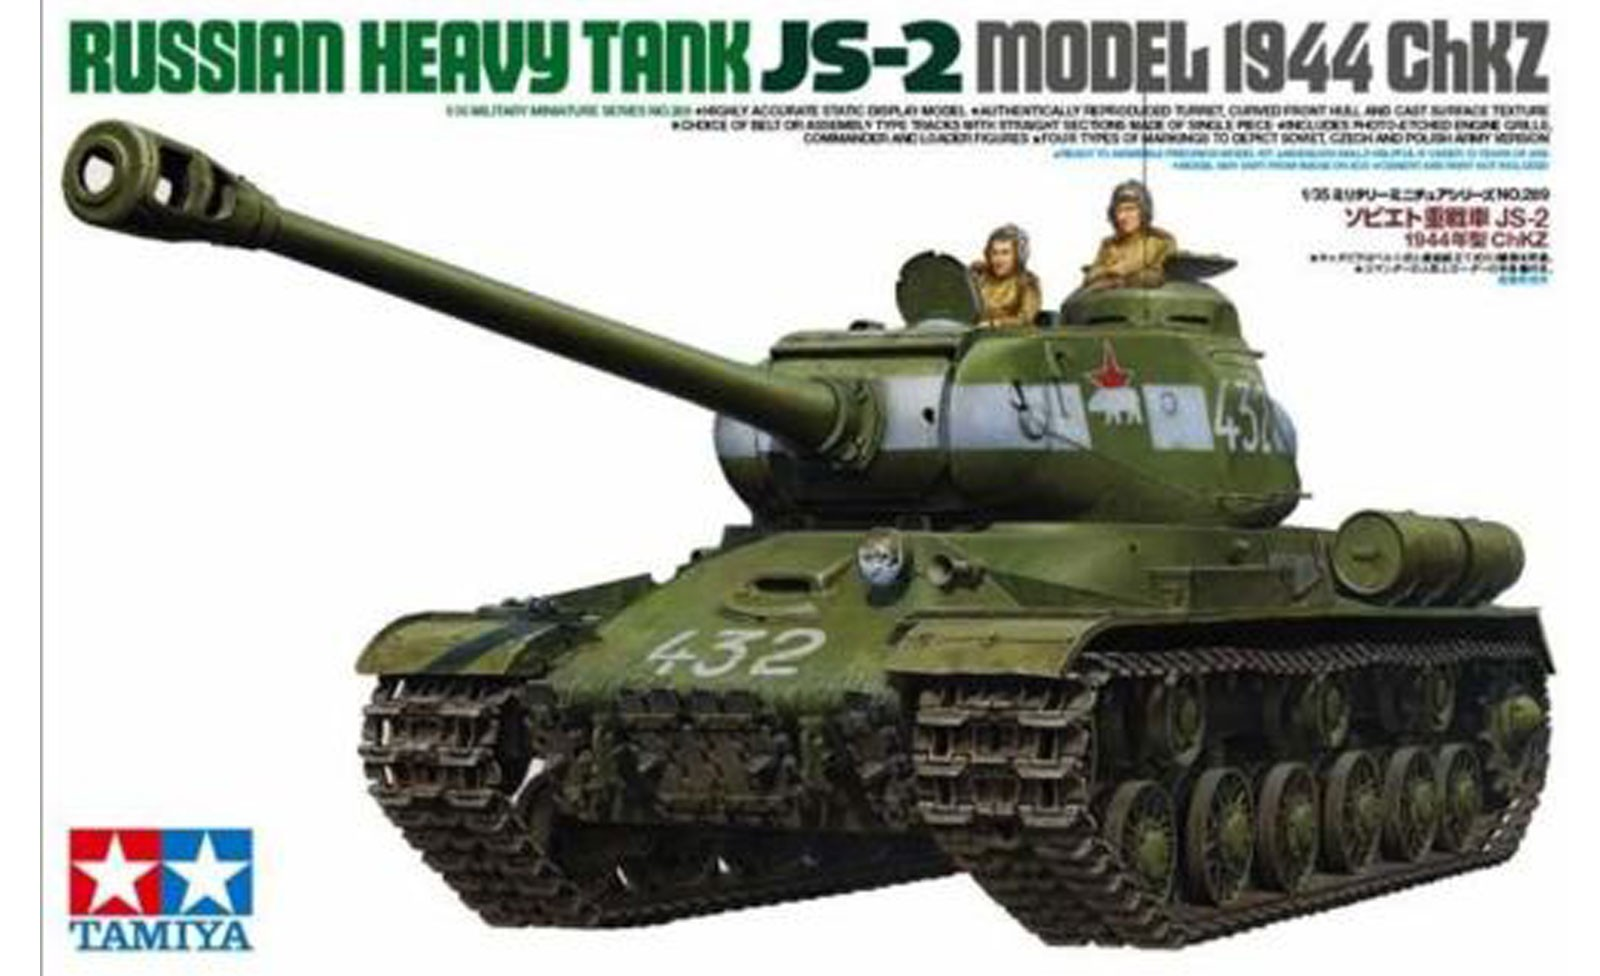 Russian Heavy Tank JS-2 Model - 1944 ChKZ - Tamiya 35289 - plastic model kit - 1/35 scale